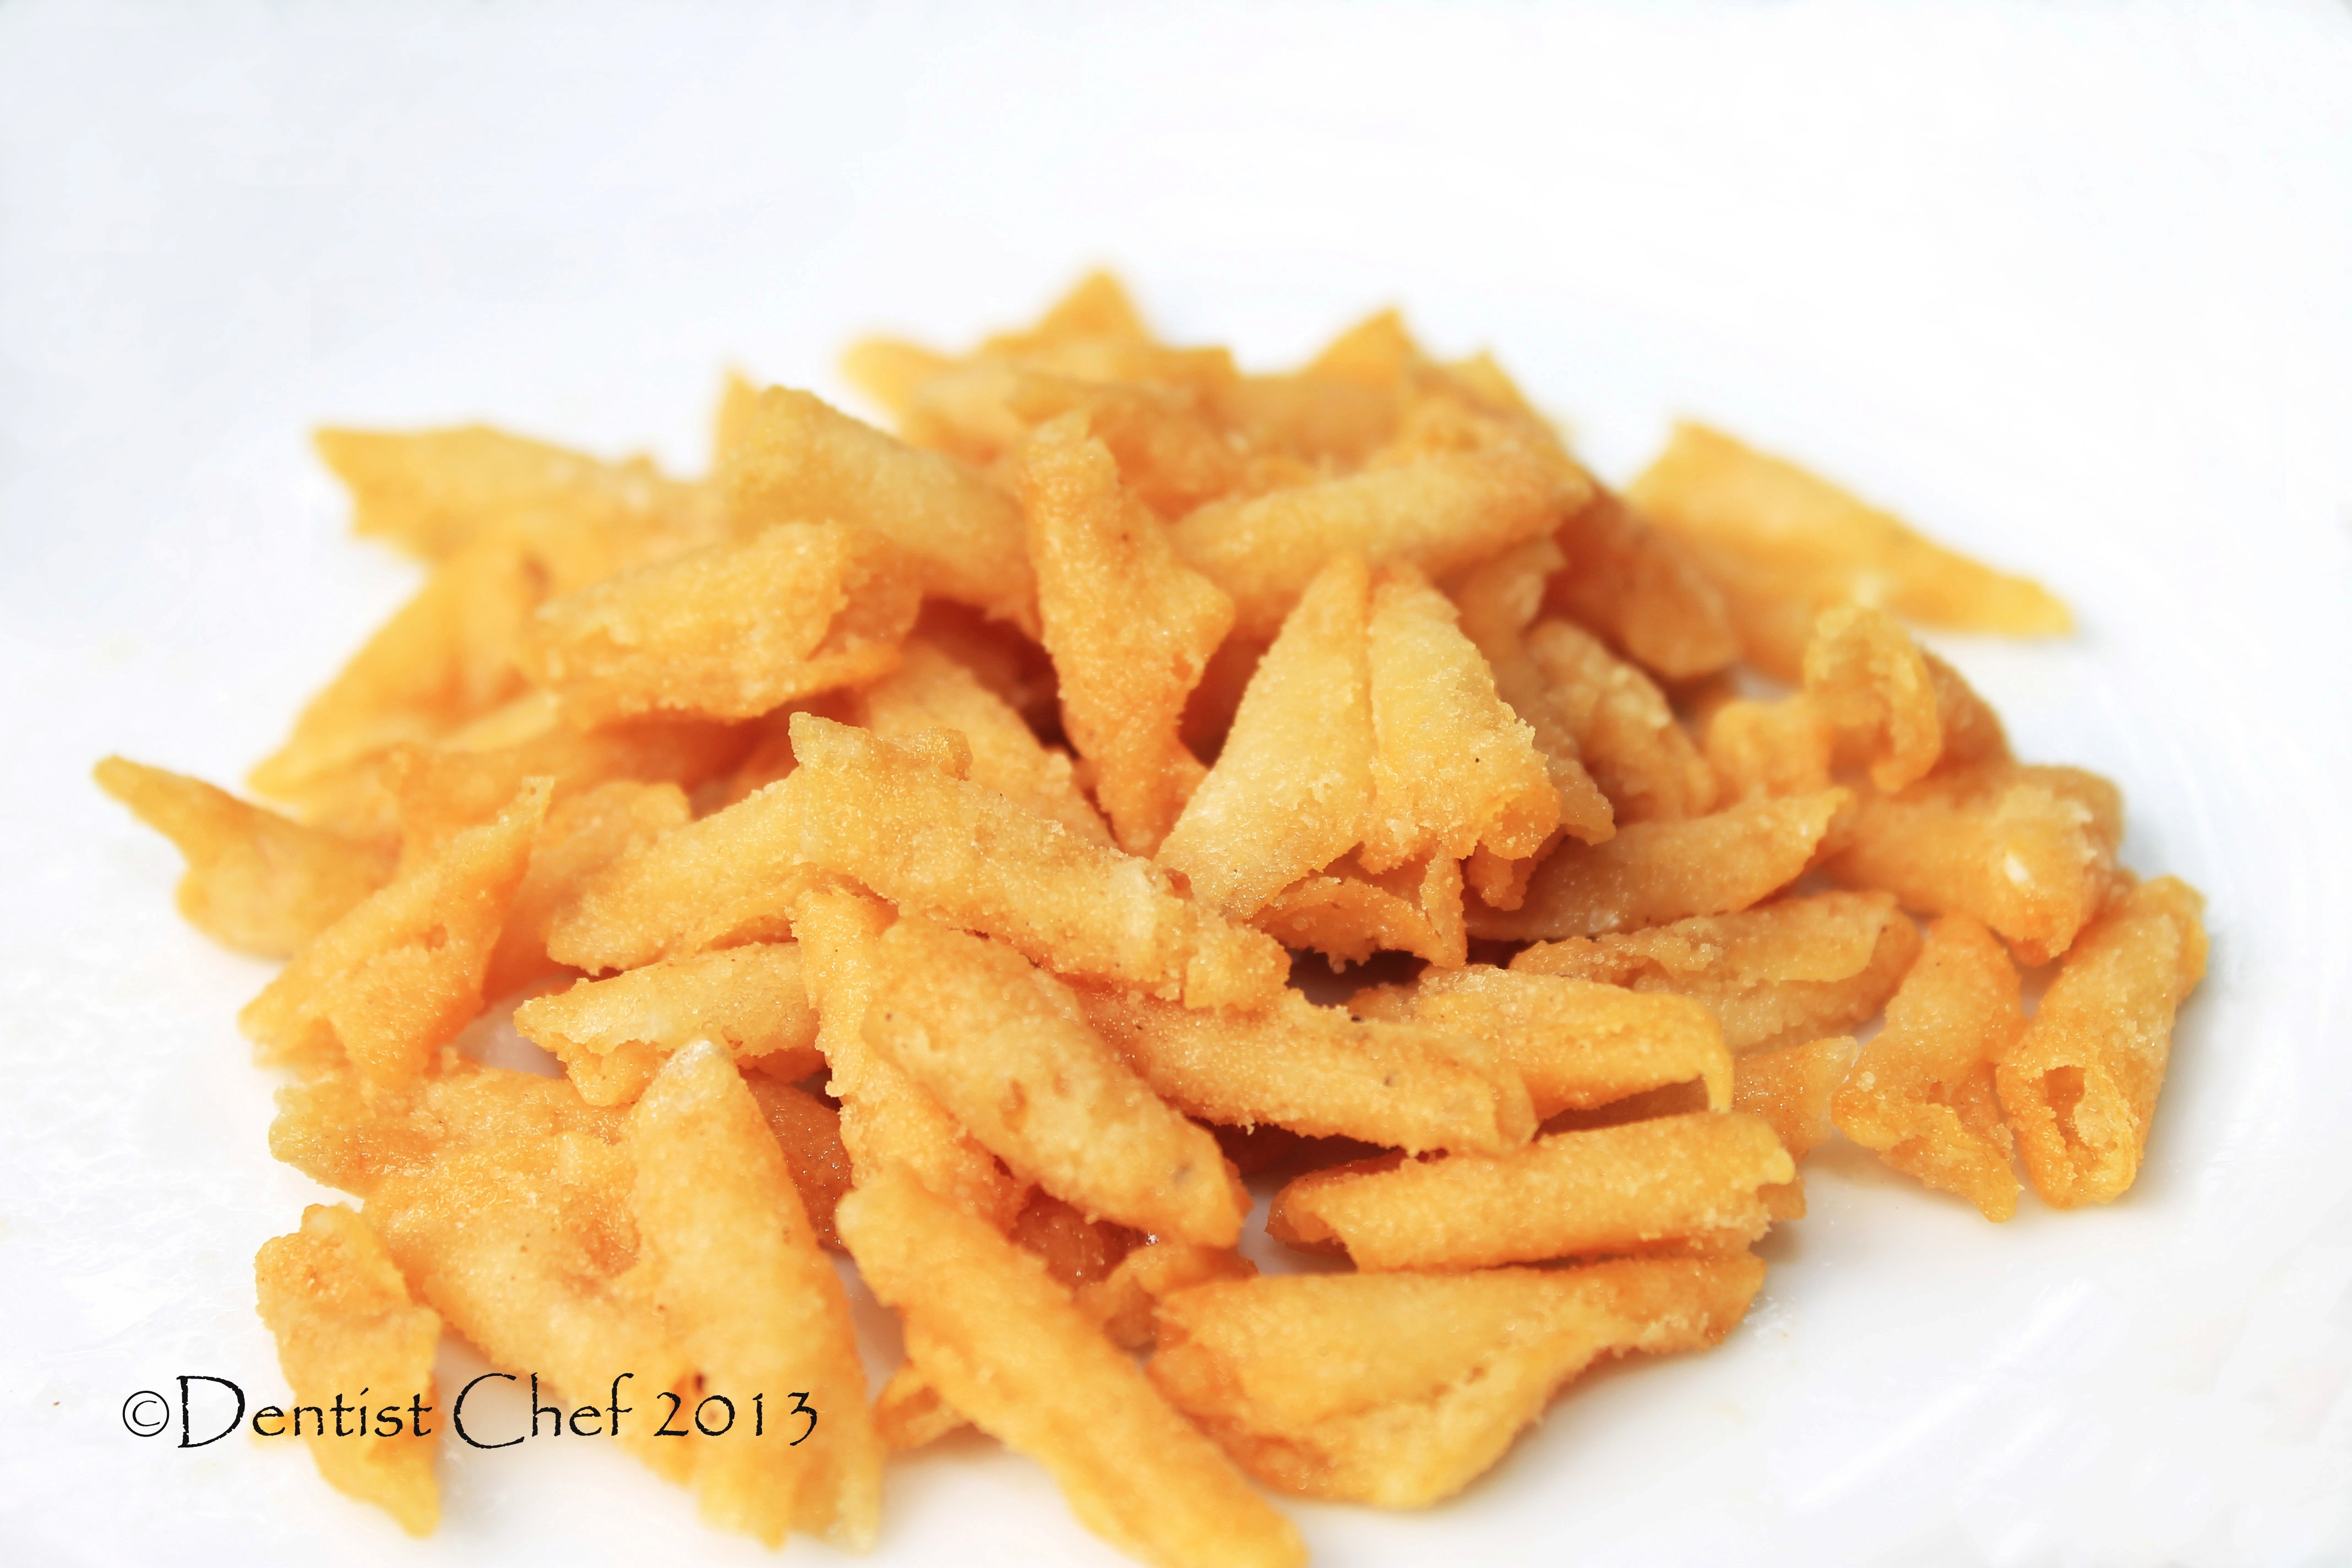 Deep fried fish scales recipe dentist chef for Southern fried fish recipe